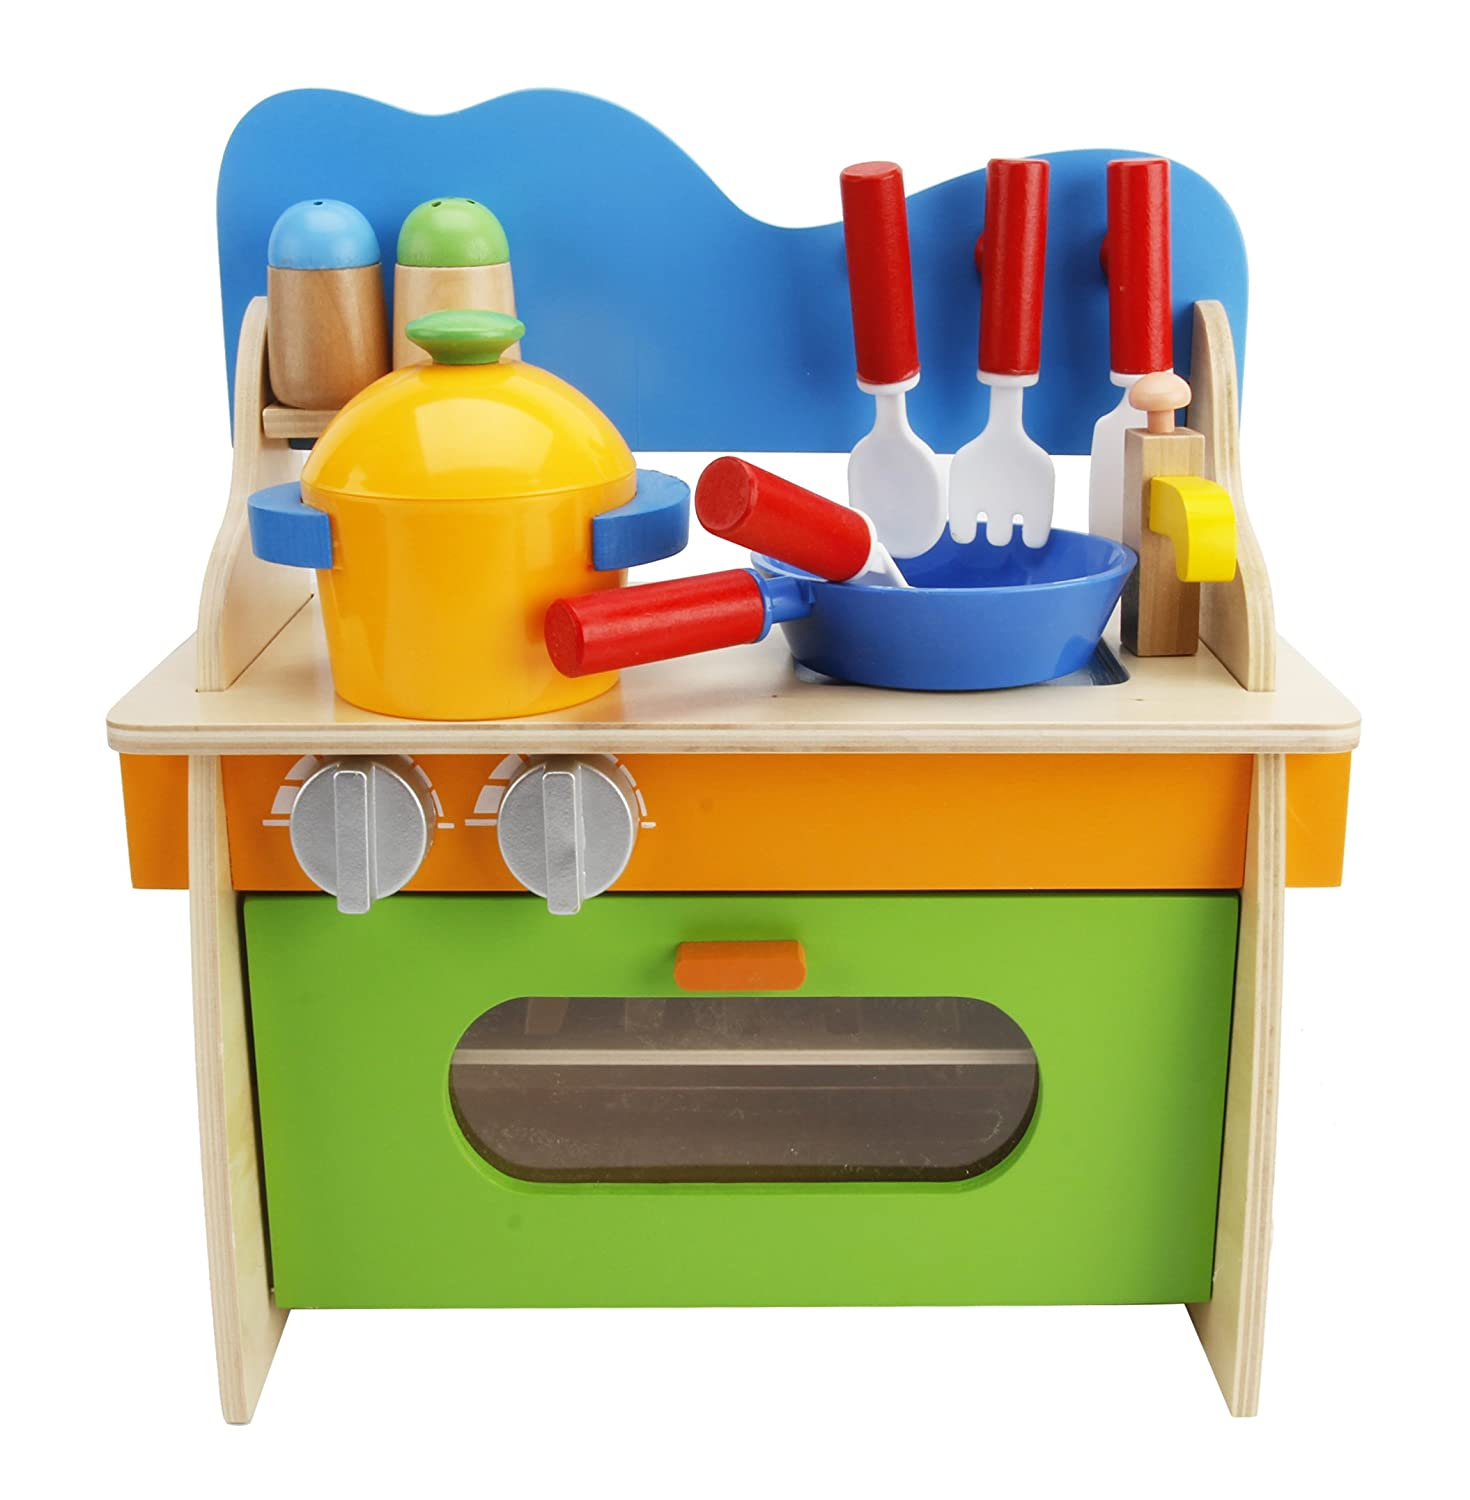 Play kitchen clip art - Amazon Com Lewo Children Wooden Play Kitchen Set Pretend Role Play Cook Learning Toys For Kids Toys Games